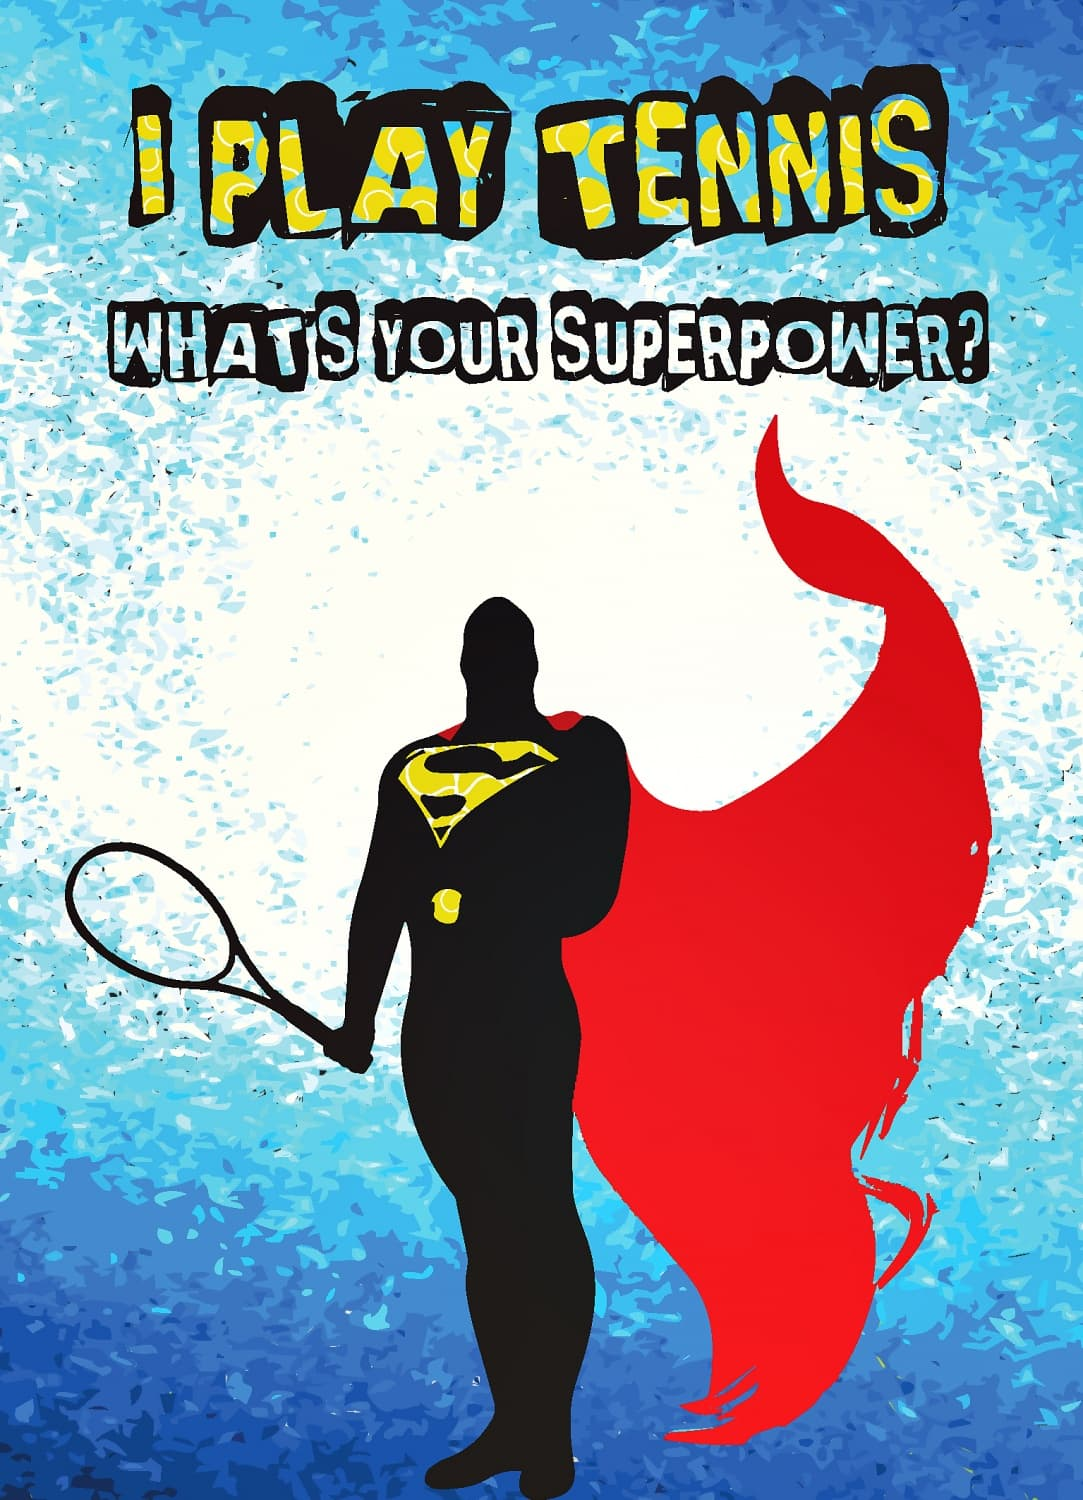 Магнит WHAT'S YOUR SUPERPOWER